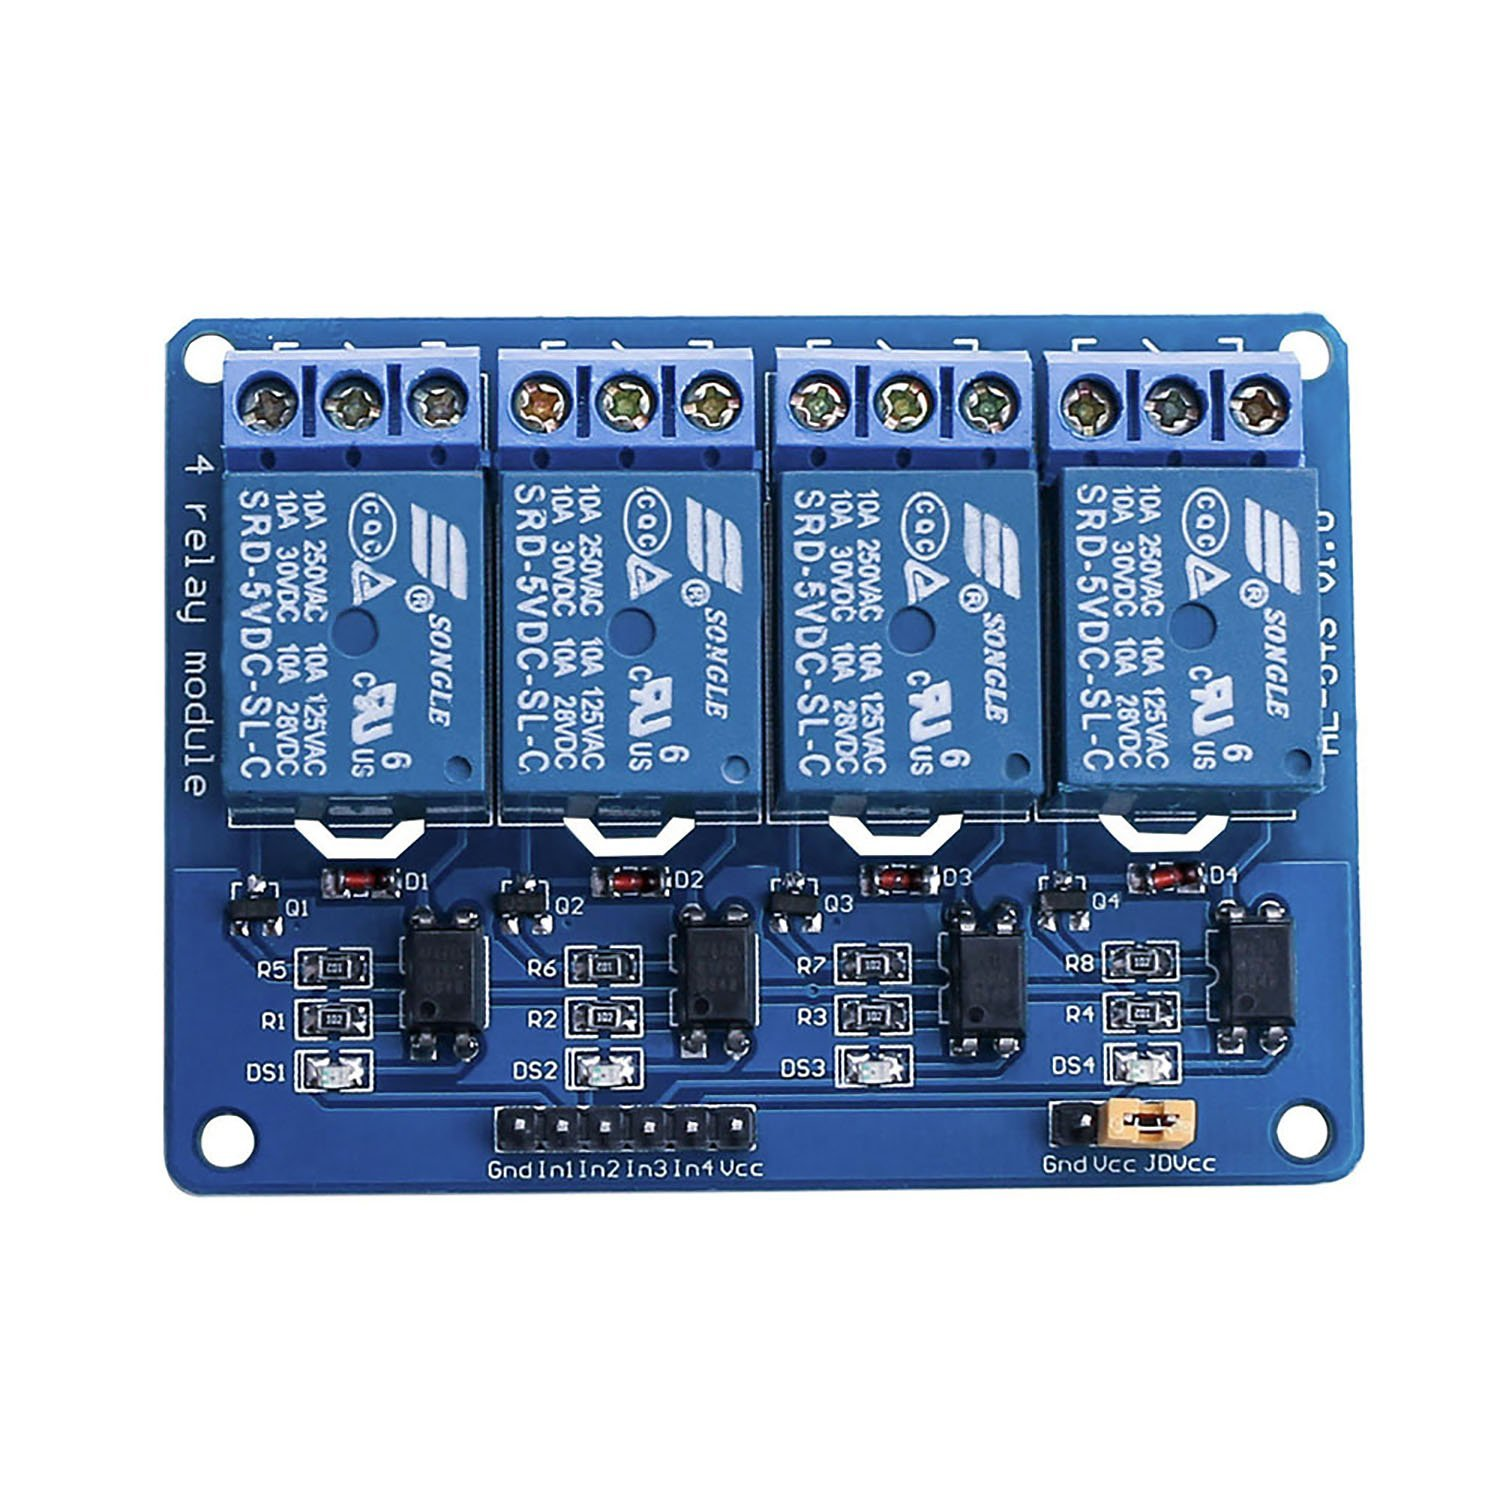 4 Channel Dc 5v Relay Module With Optocoupler For Arduino Uno Kit In Sainsmart 8 Wiring Diagram Aeproductgetsubject